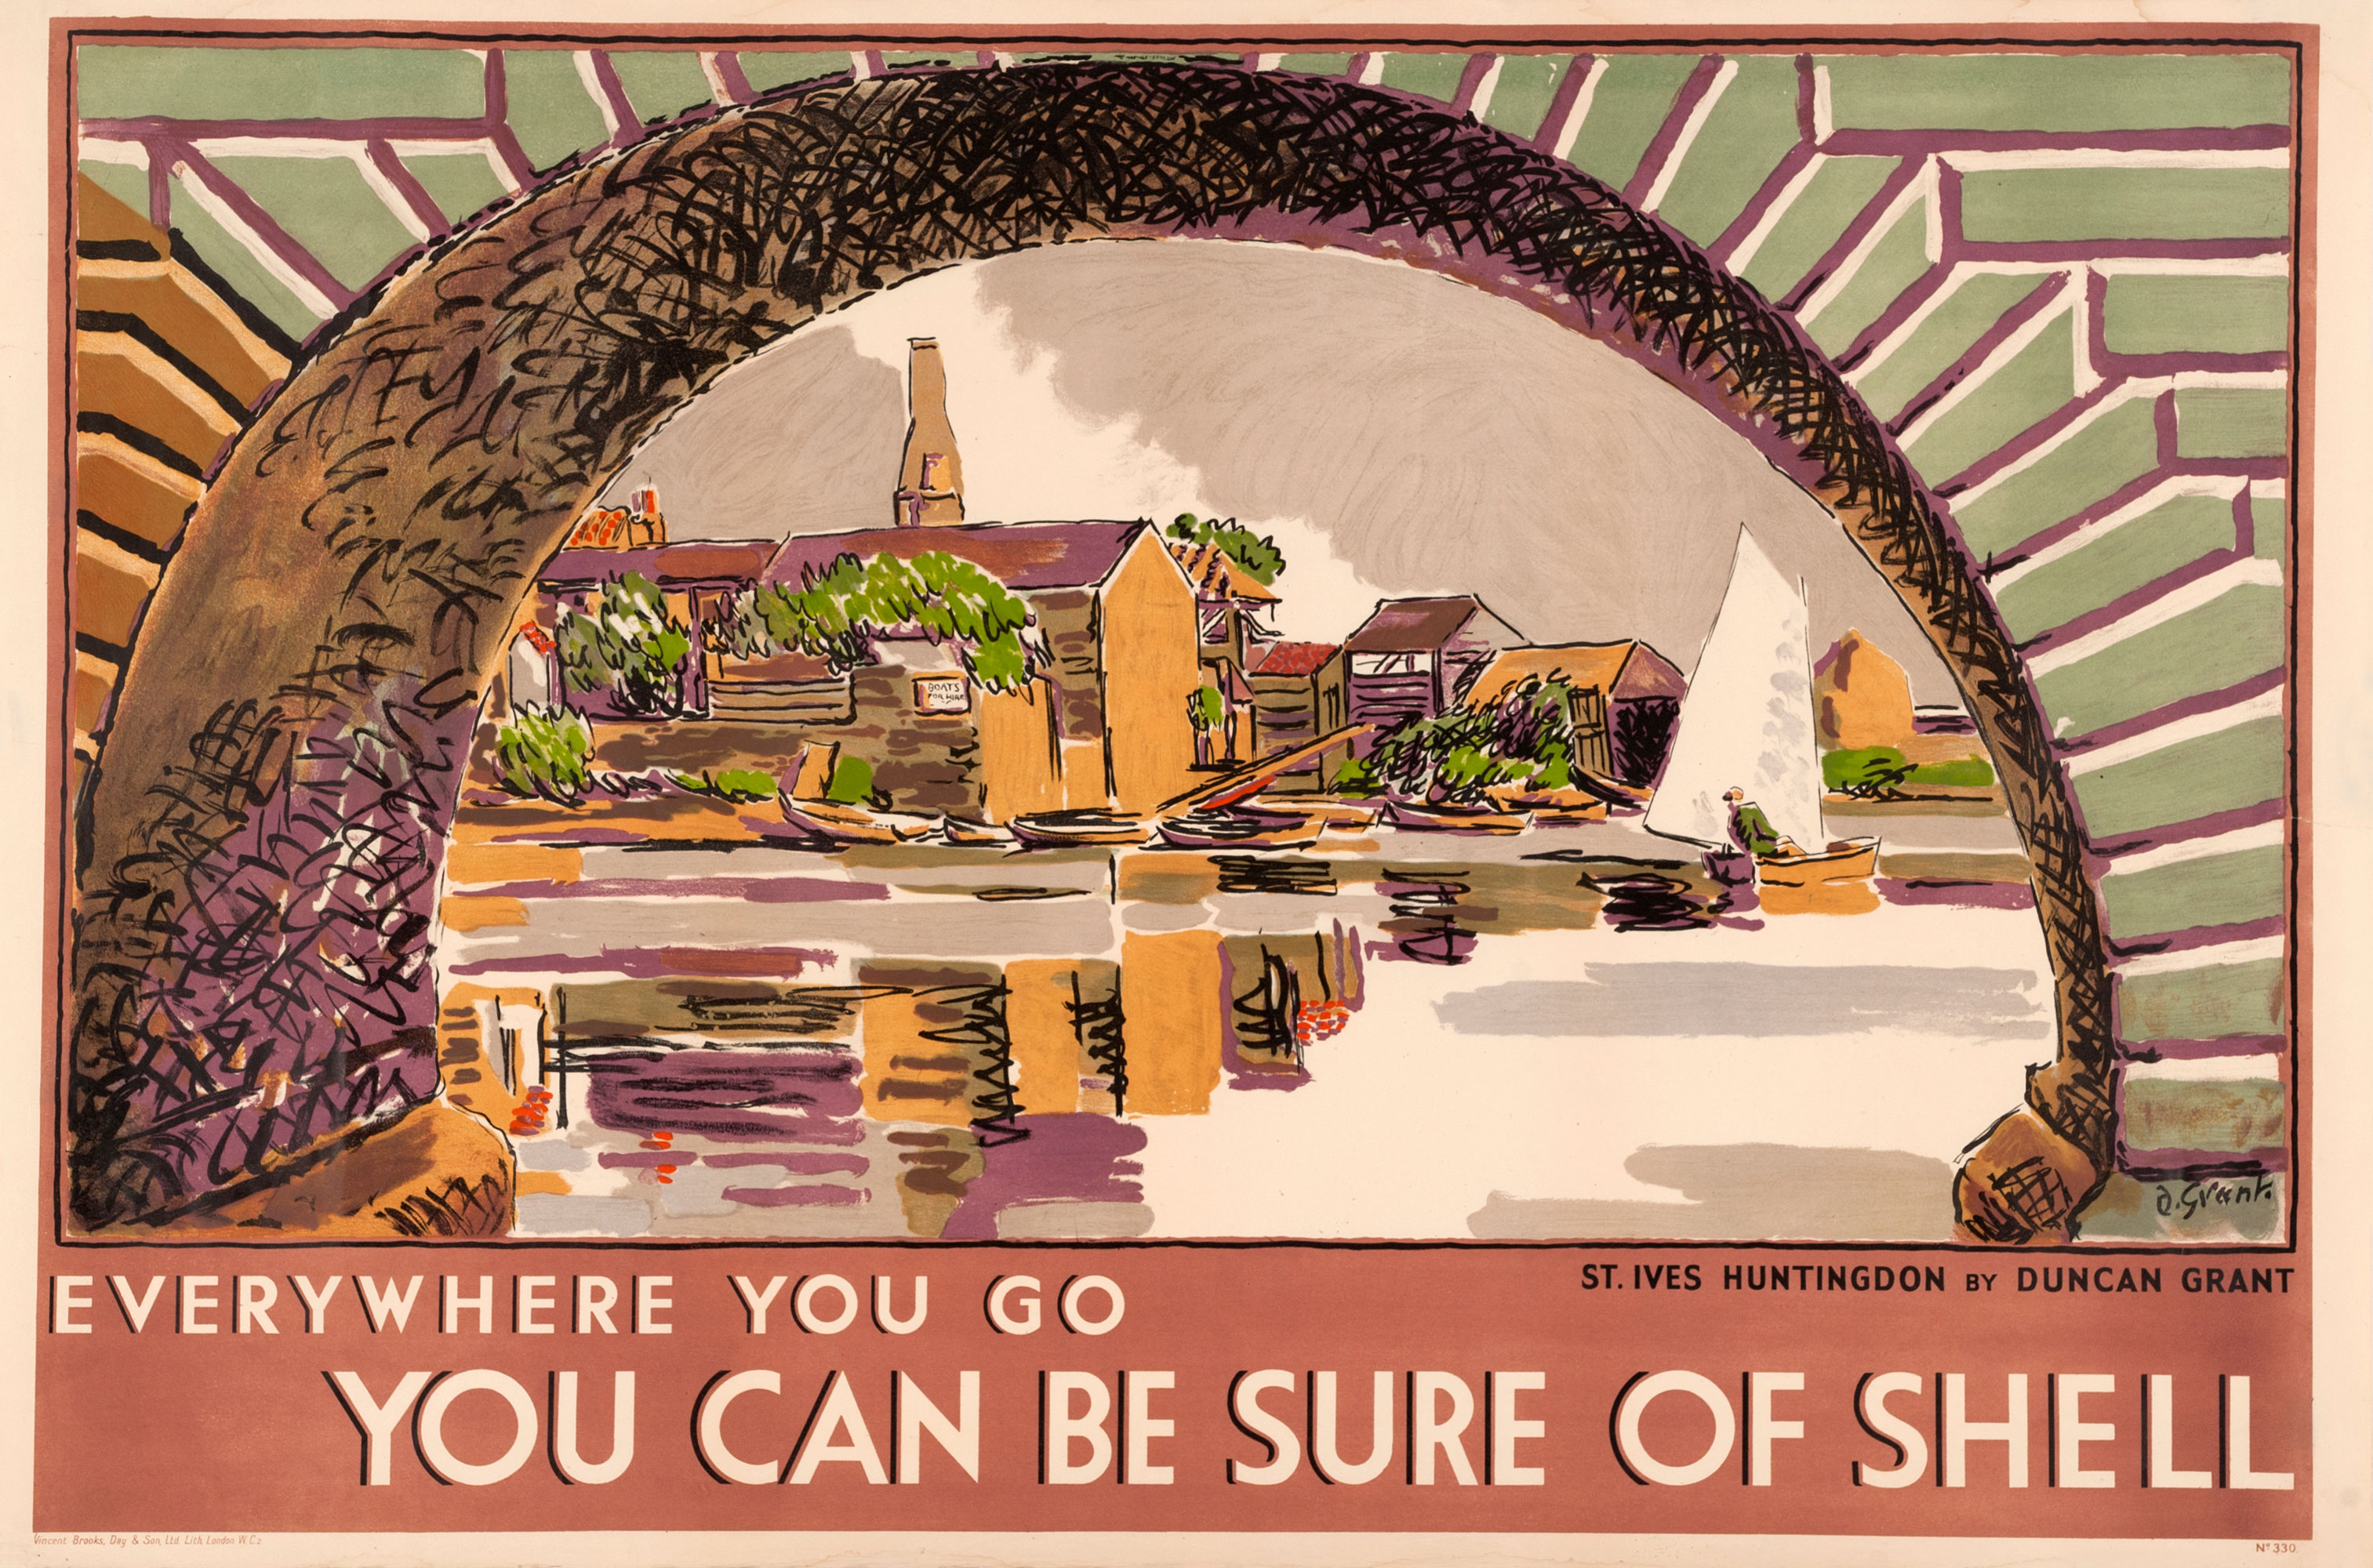 Shell poster number 330, St Ives, Huntingdon by Duncan Grant. Painting of a bridge at St Ives in a cartoon like style, visible through the bridge are buildings and boats.